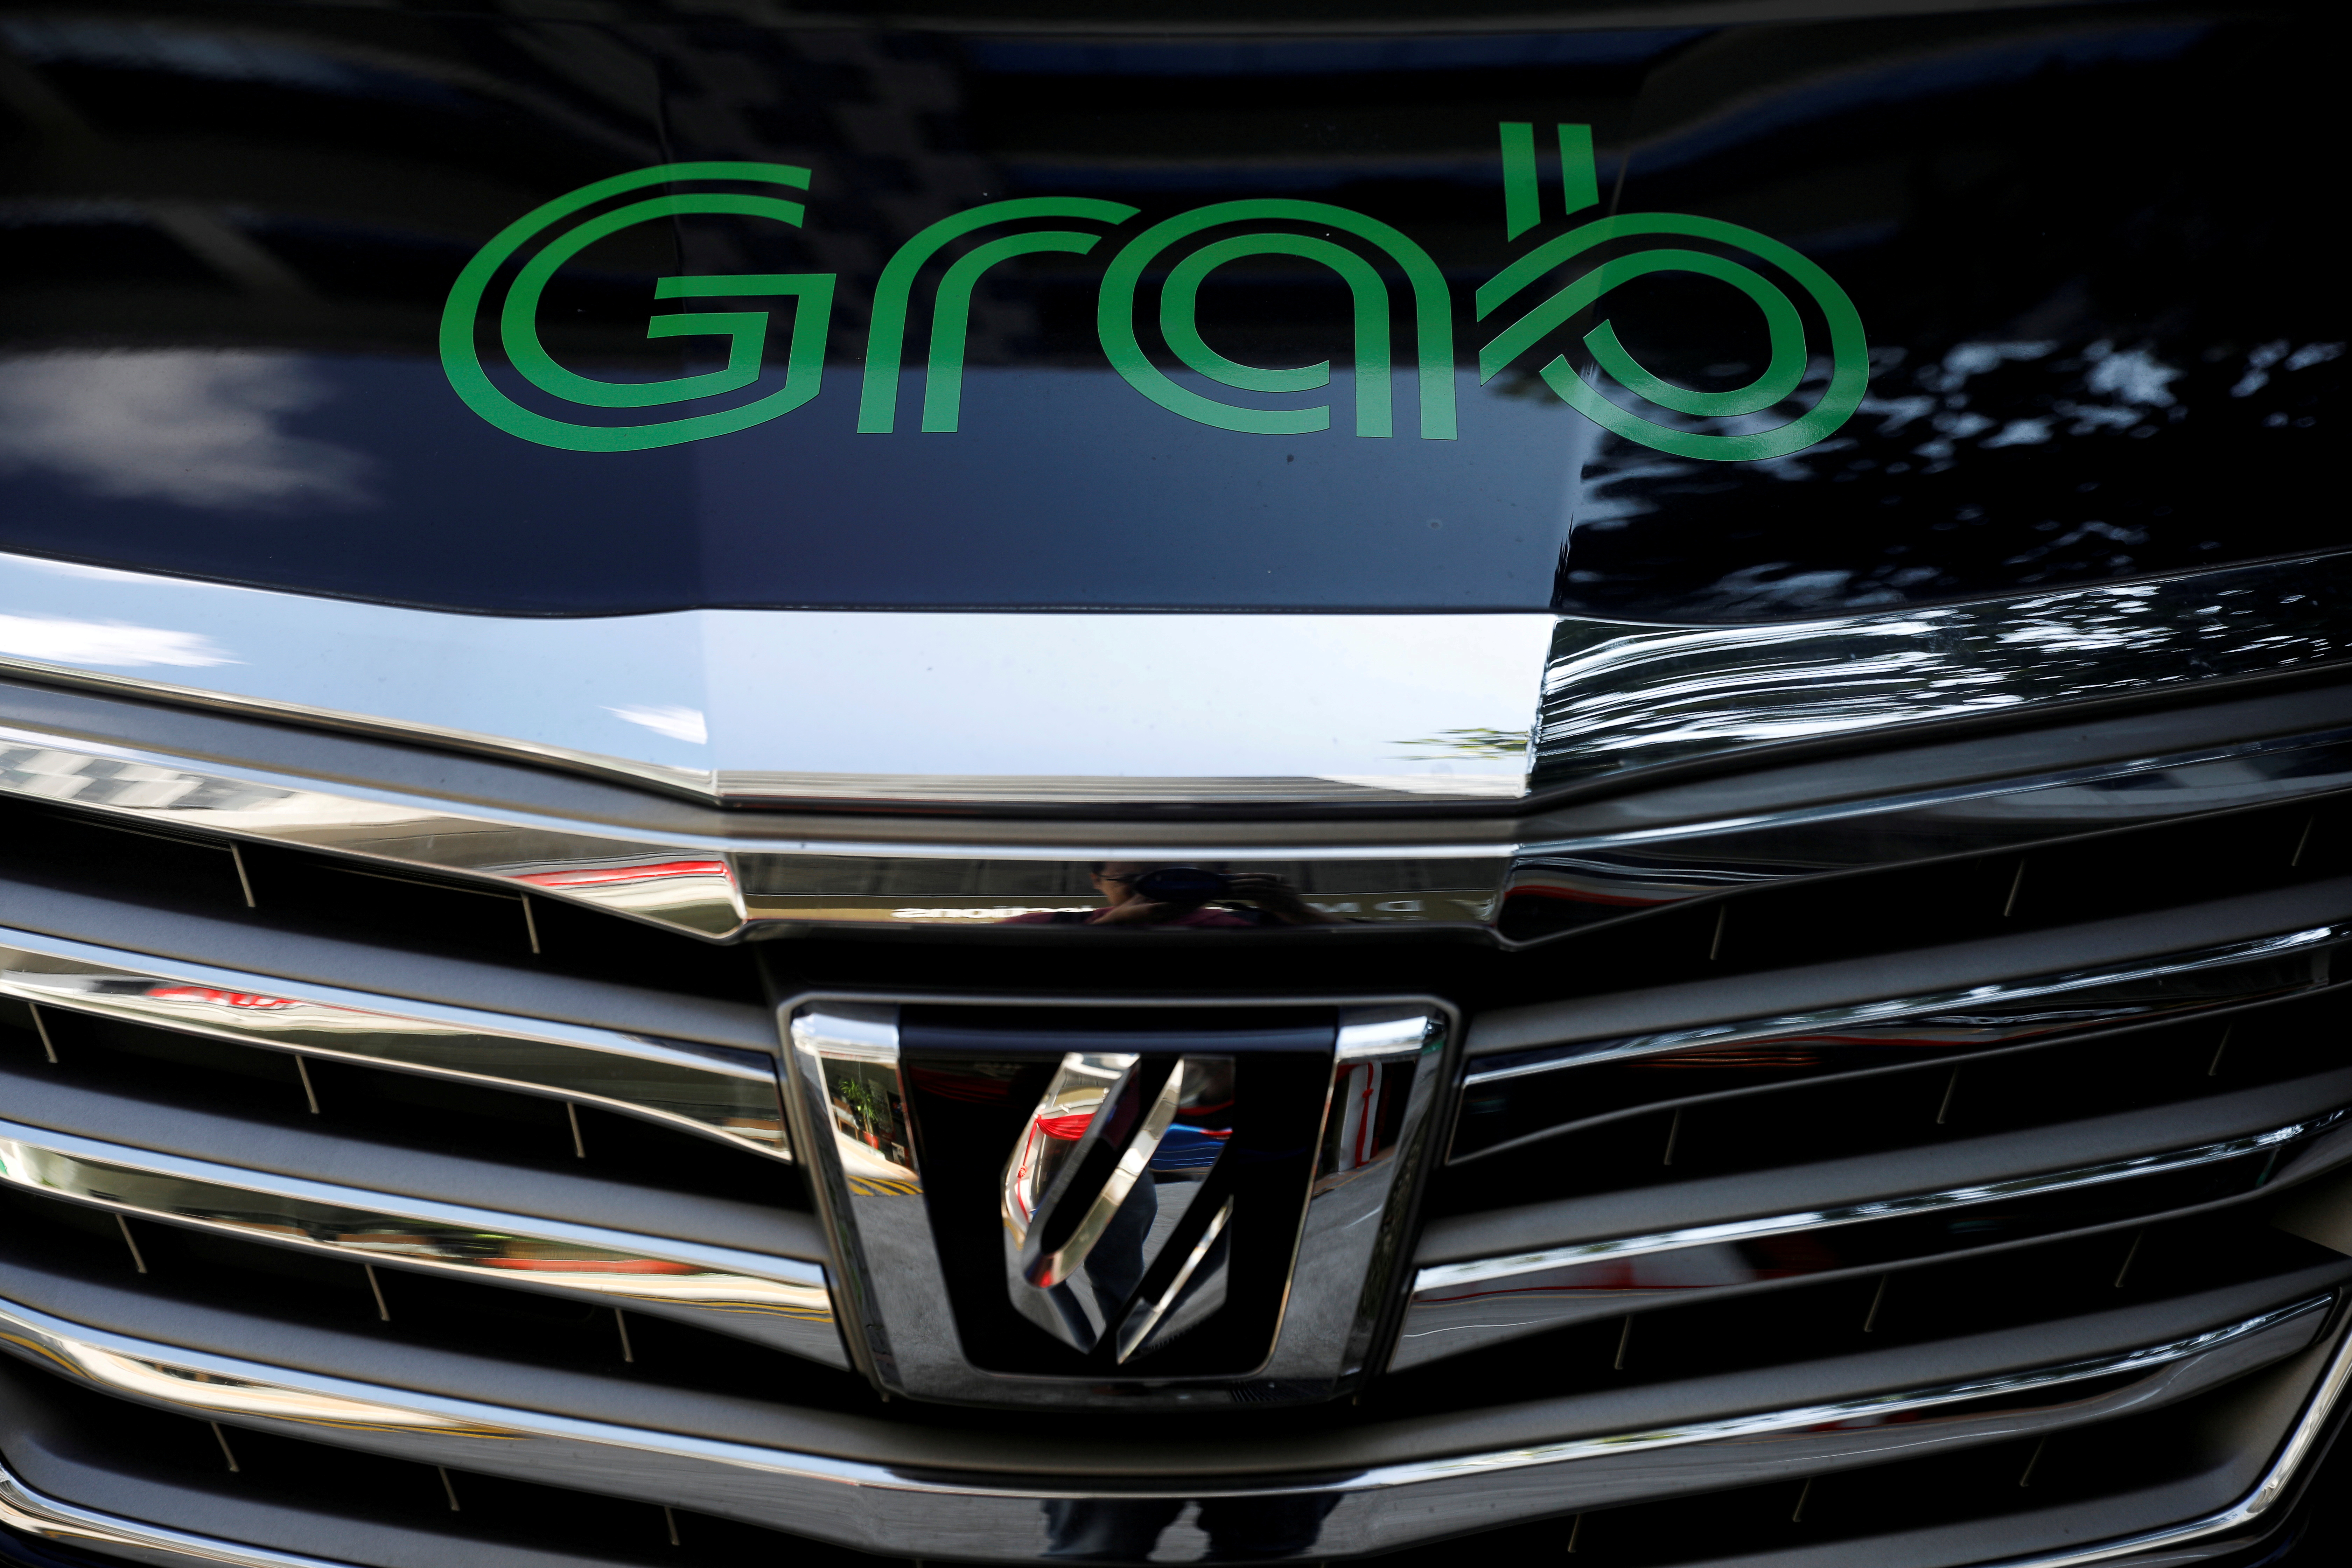 A Grab vehicle is pictured in Singapore March 26, 2018. REUTERS/Edgar Su